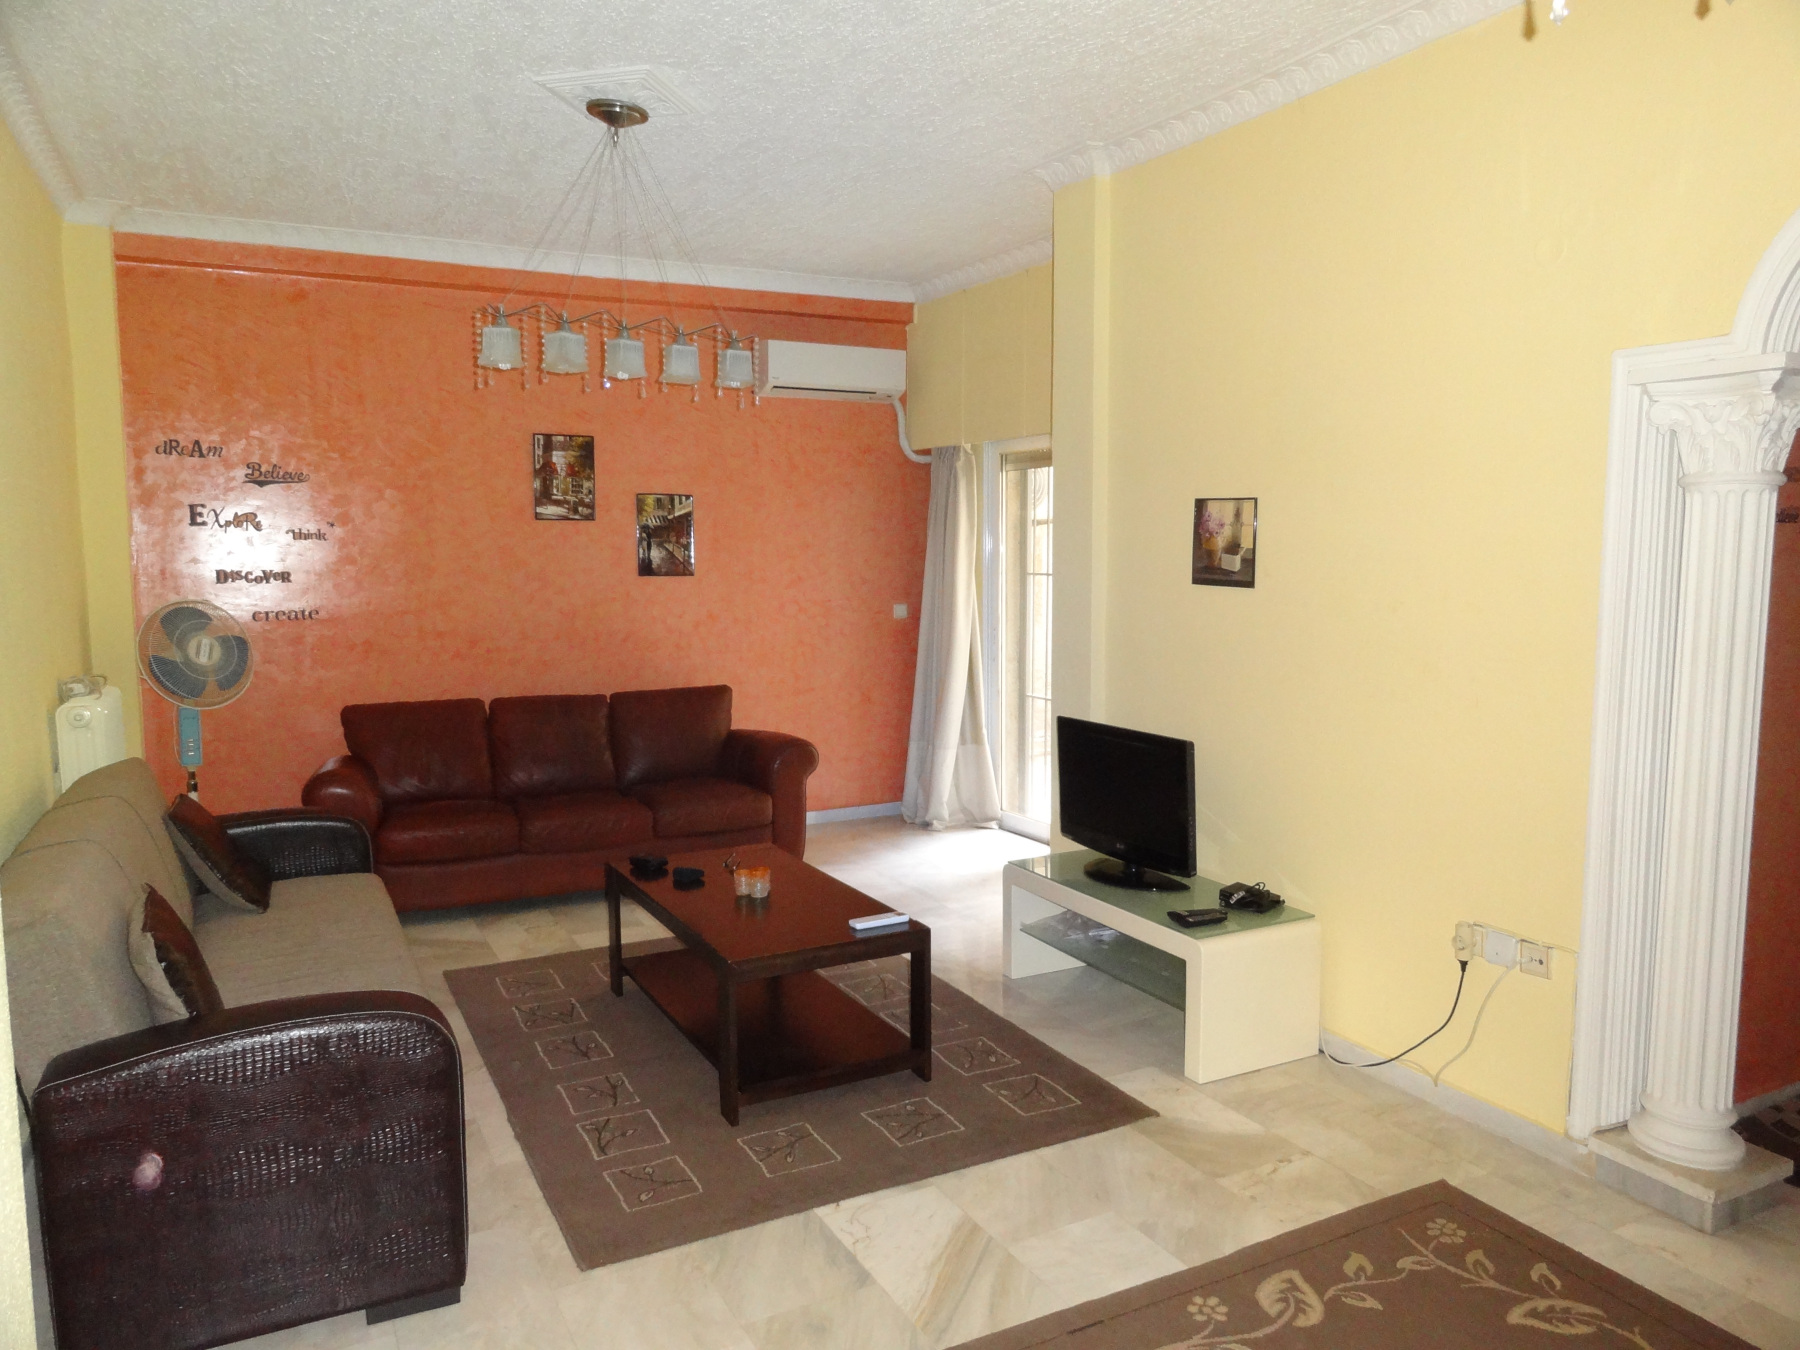 For sale 2 bedrooms apartment of 92 sq.m. 1st floor in the center of Ioannina.